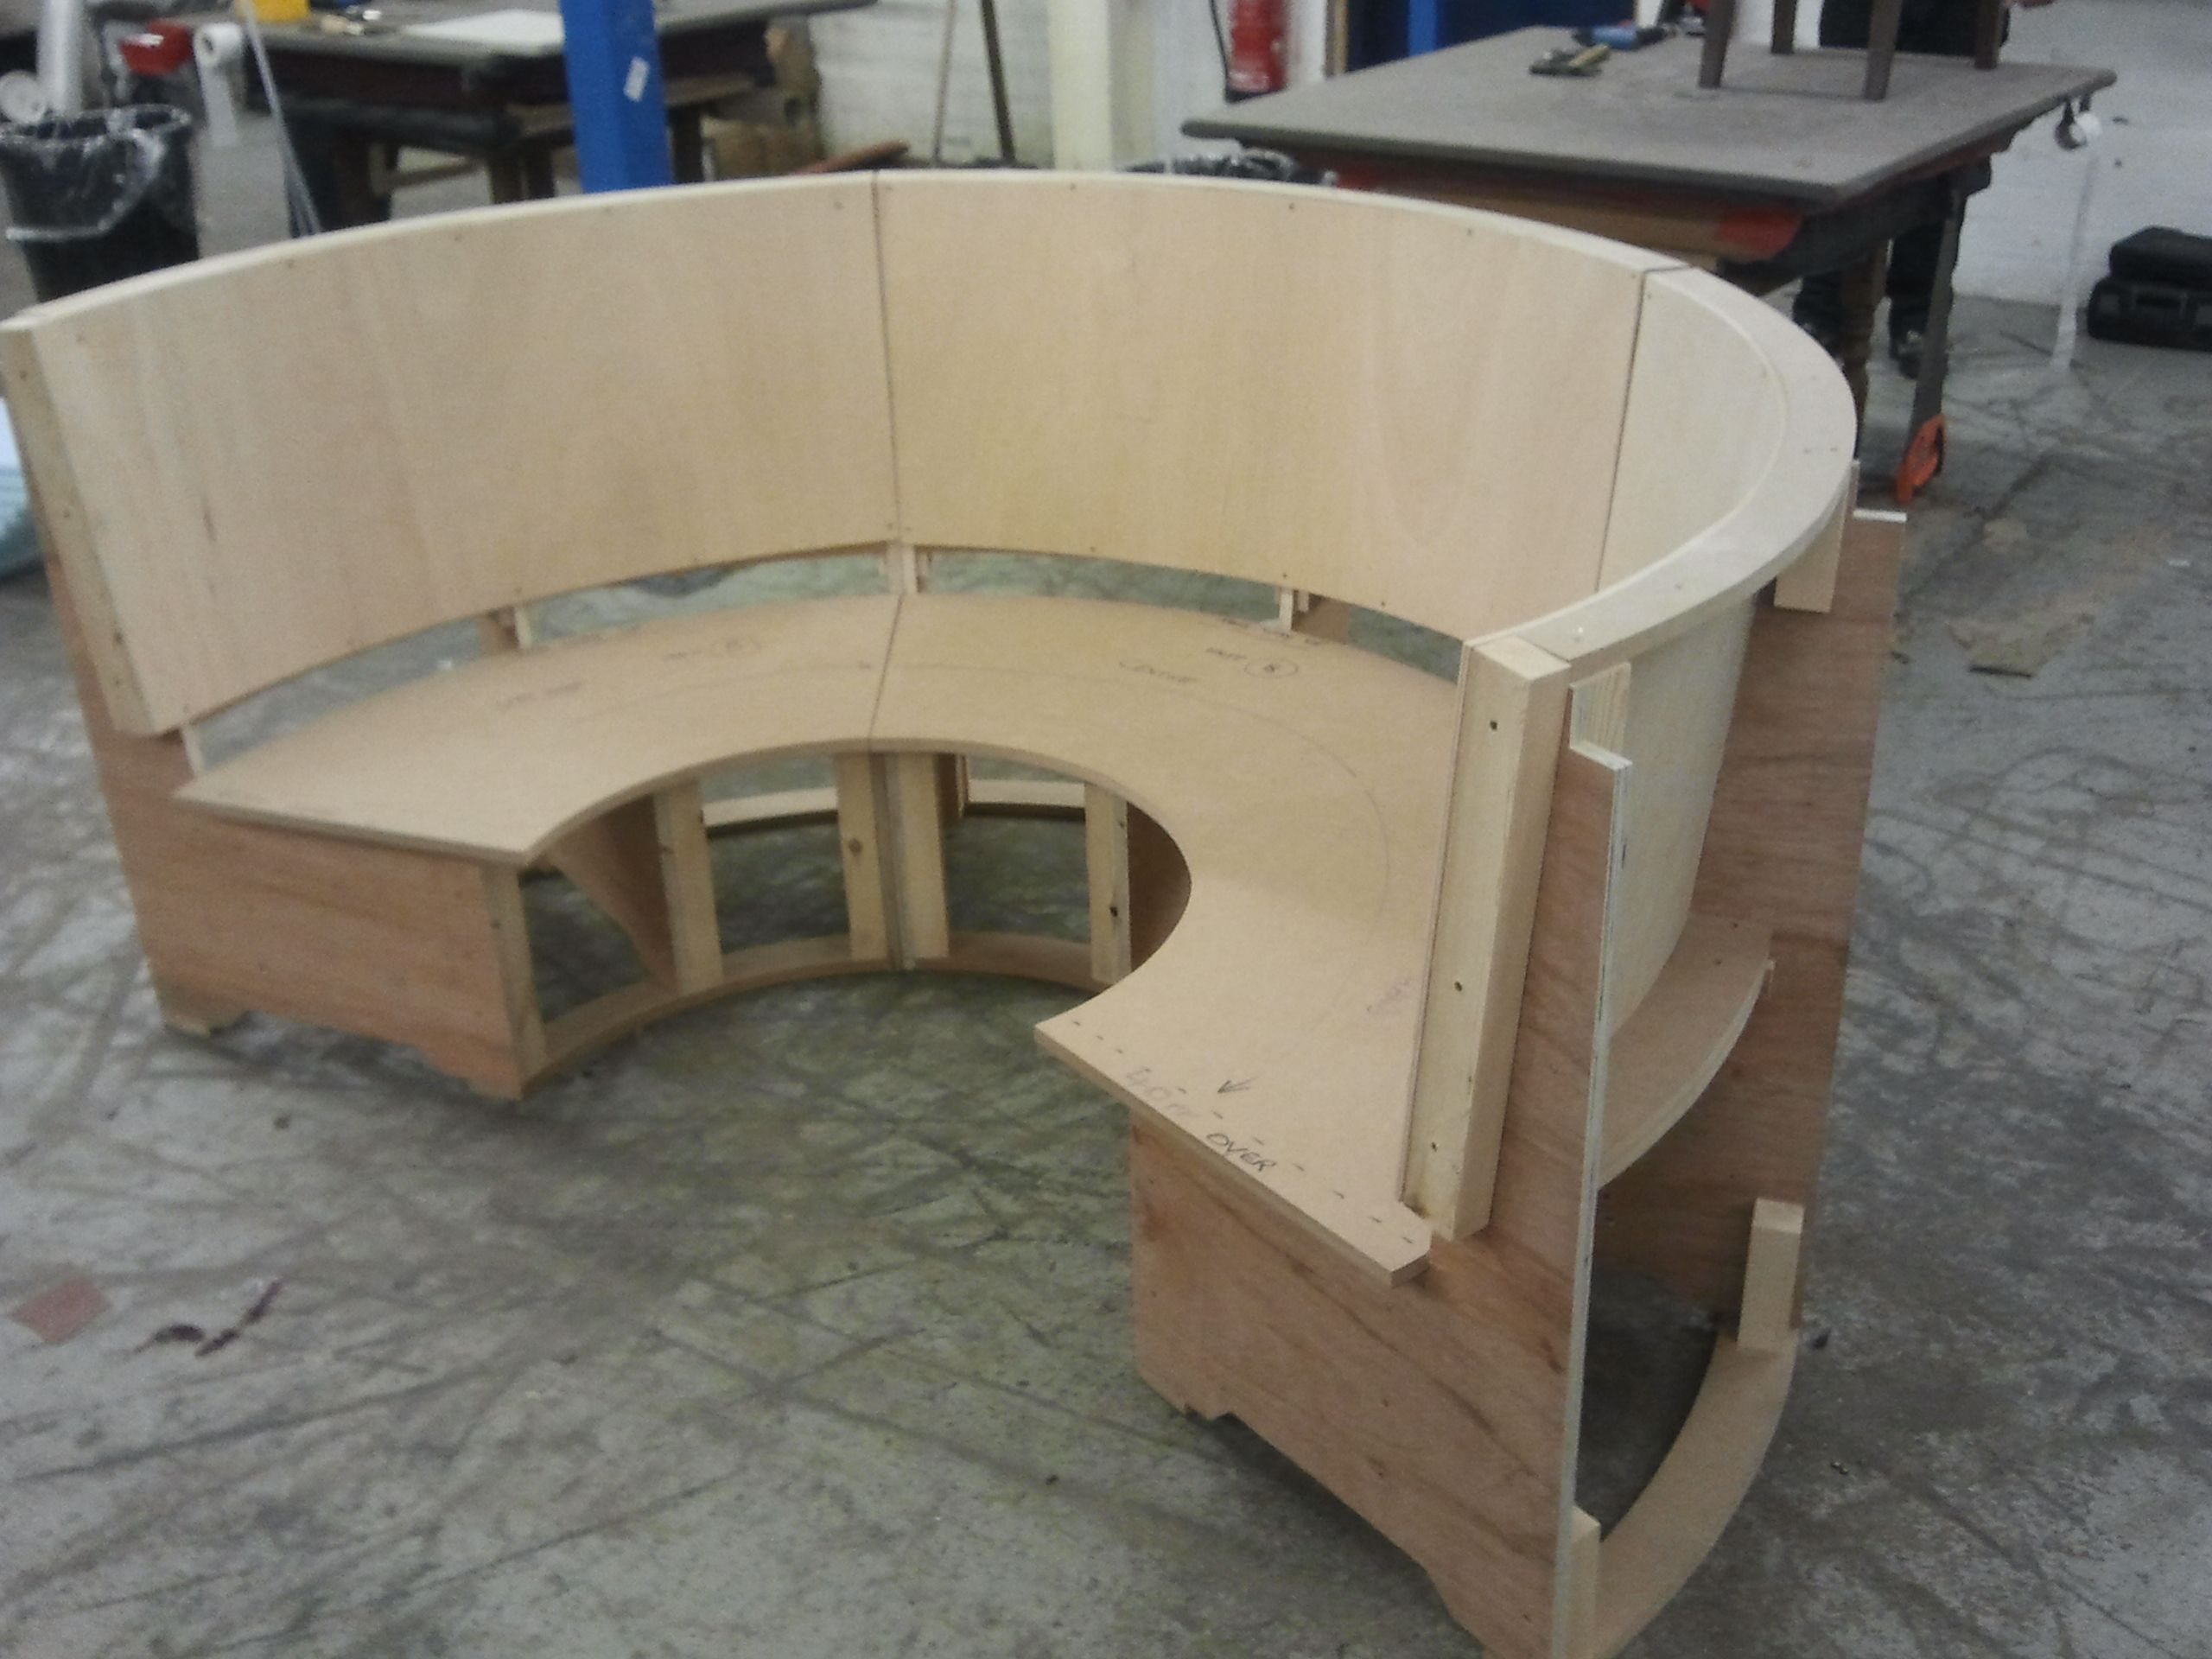 Semi circular seating booth ready for upholstering